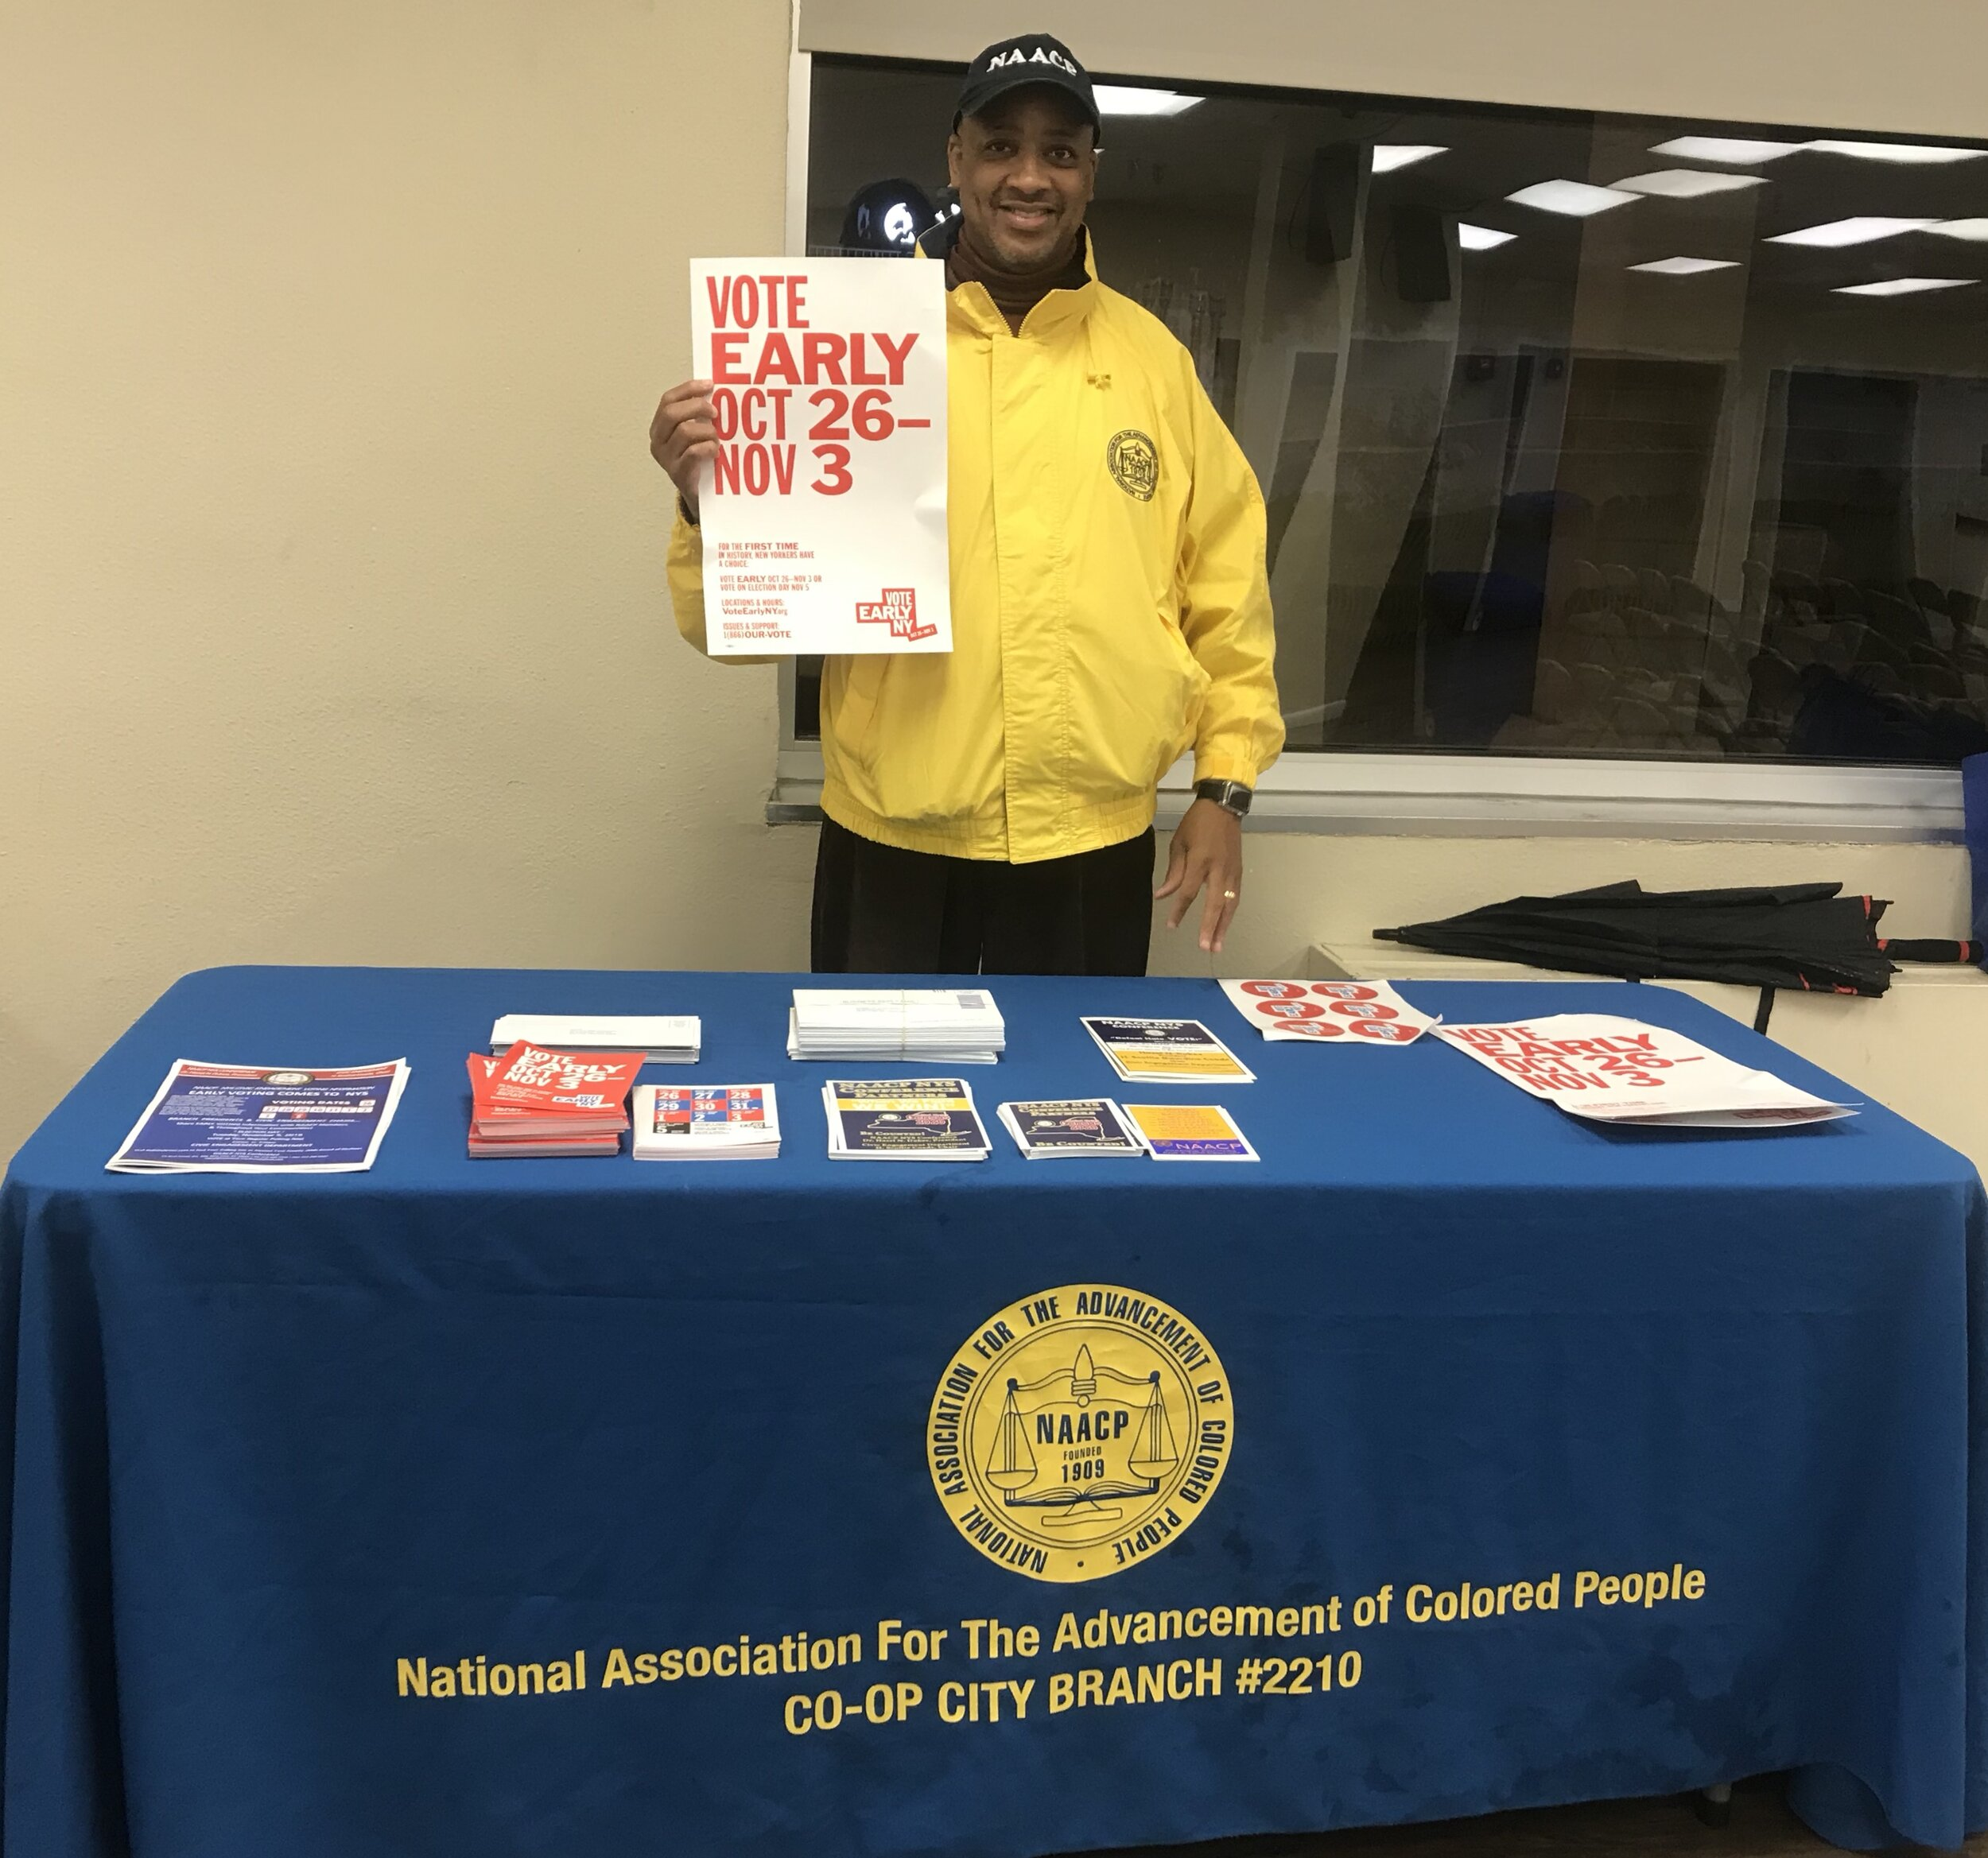 Jerome Rice, President NAACP CO-OP City